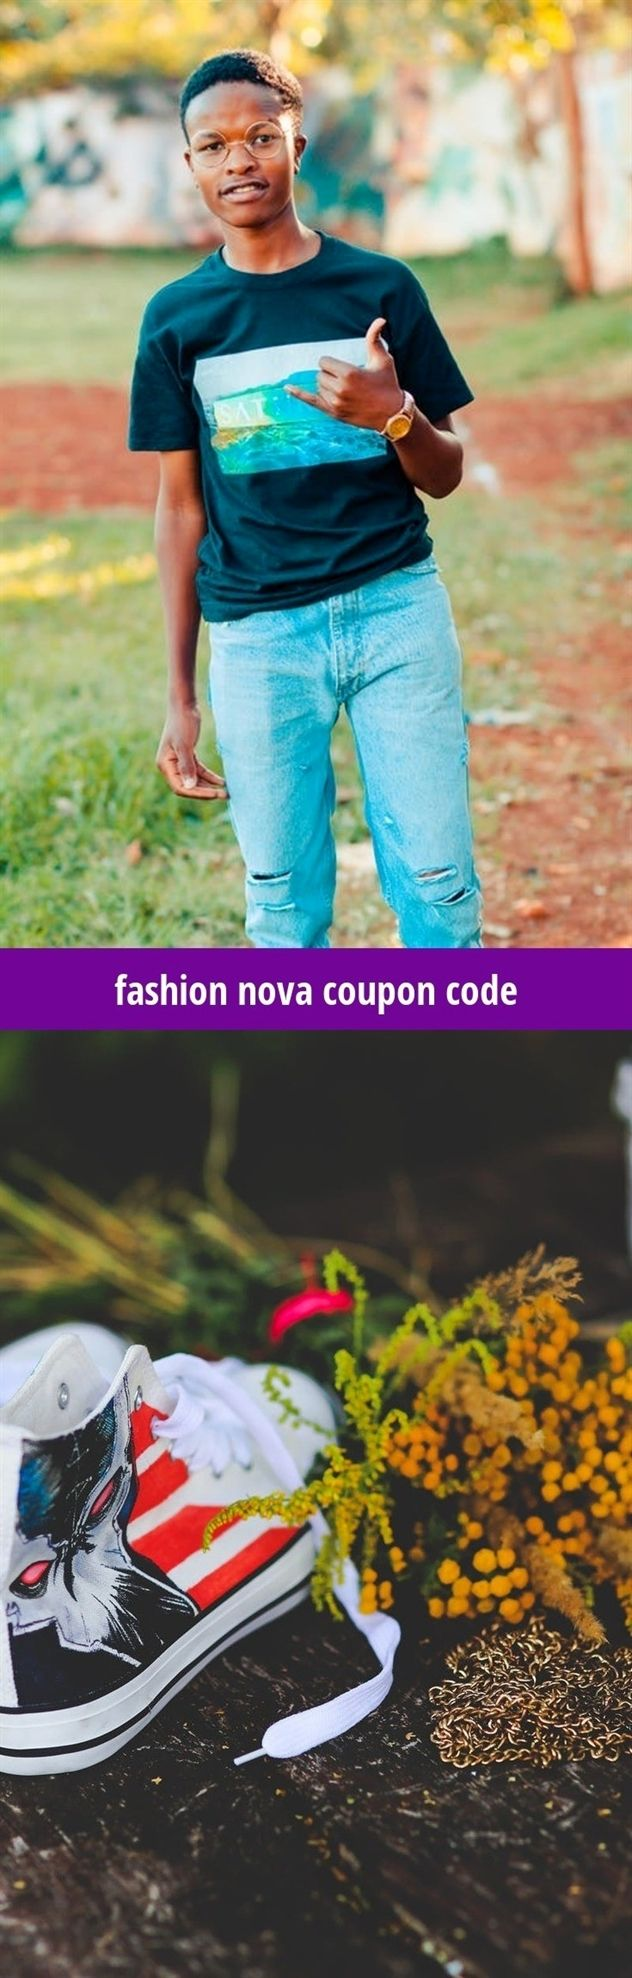 30bab3174fea4  fashion nova coupon code 610 20180817112114 56  fashion nova discount code